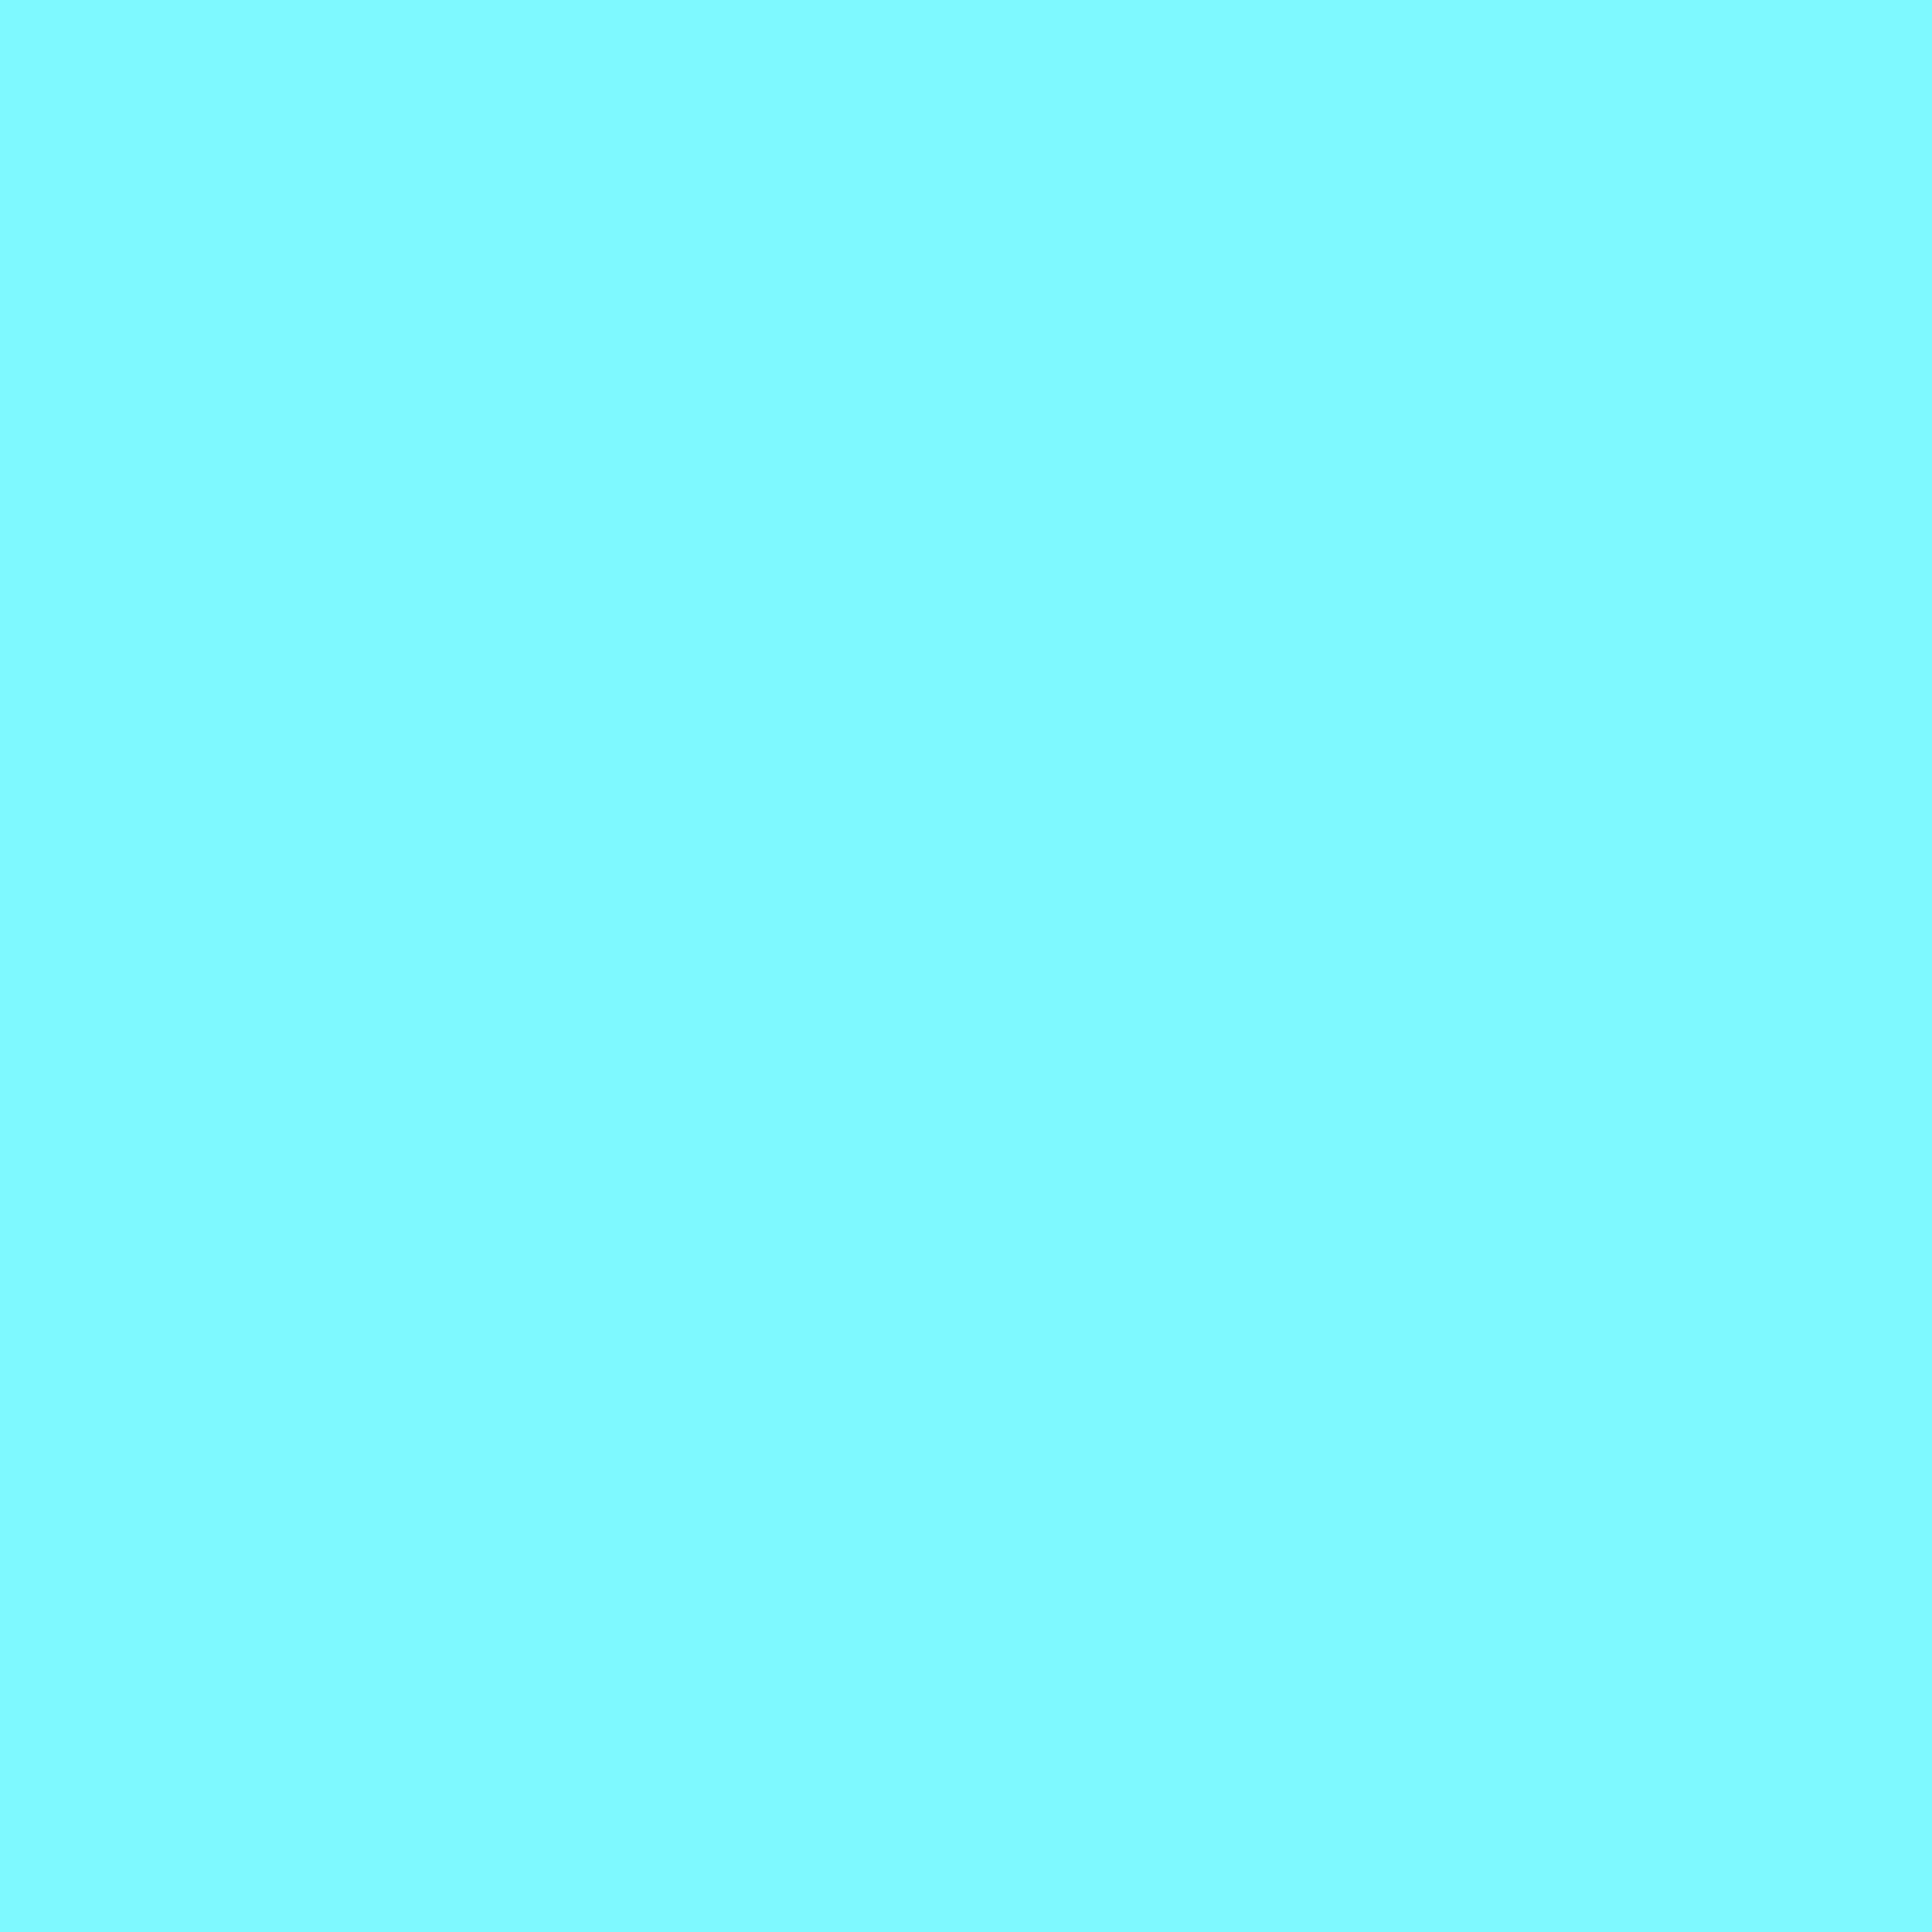 2732x2732 Electric Blue Solid Color Background